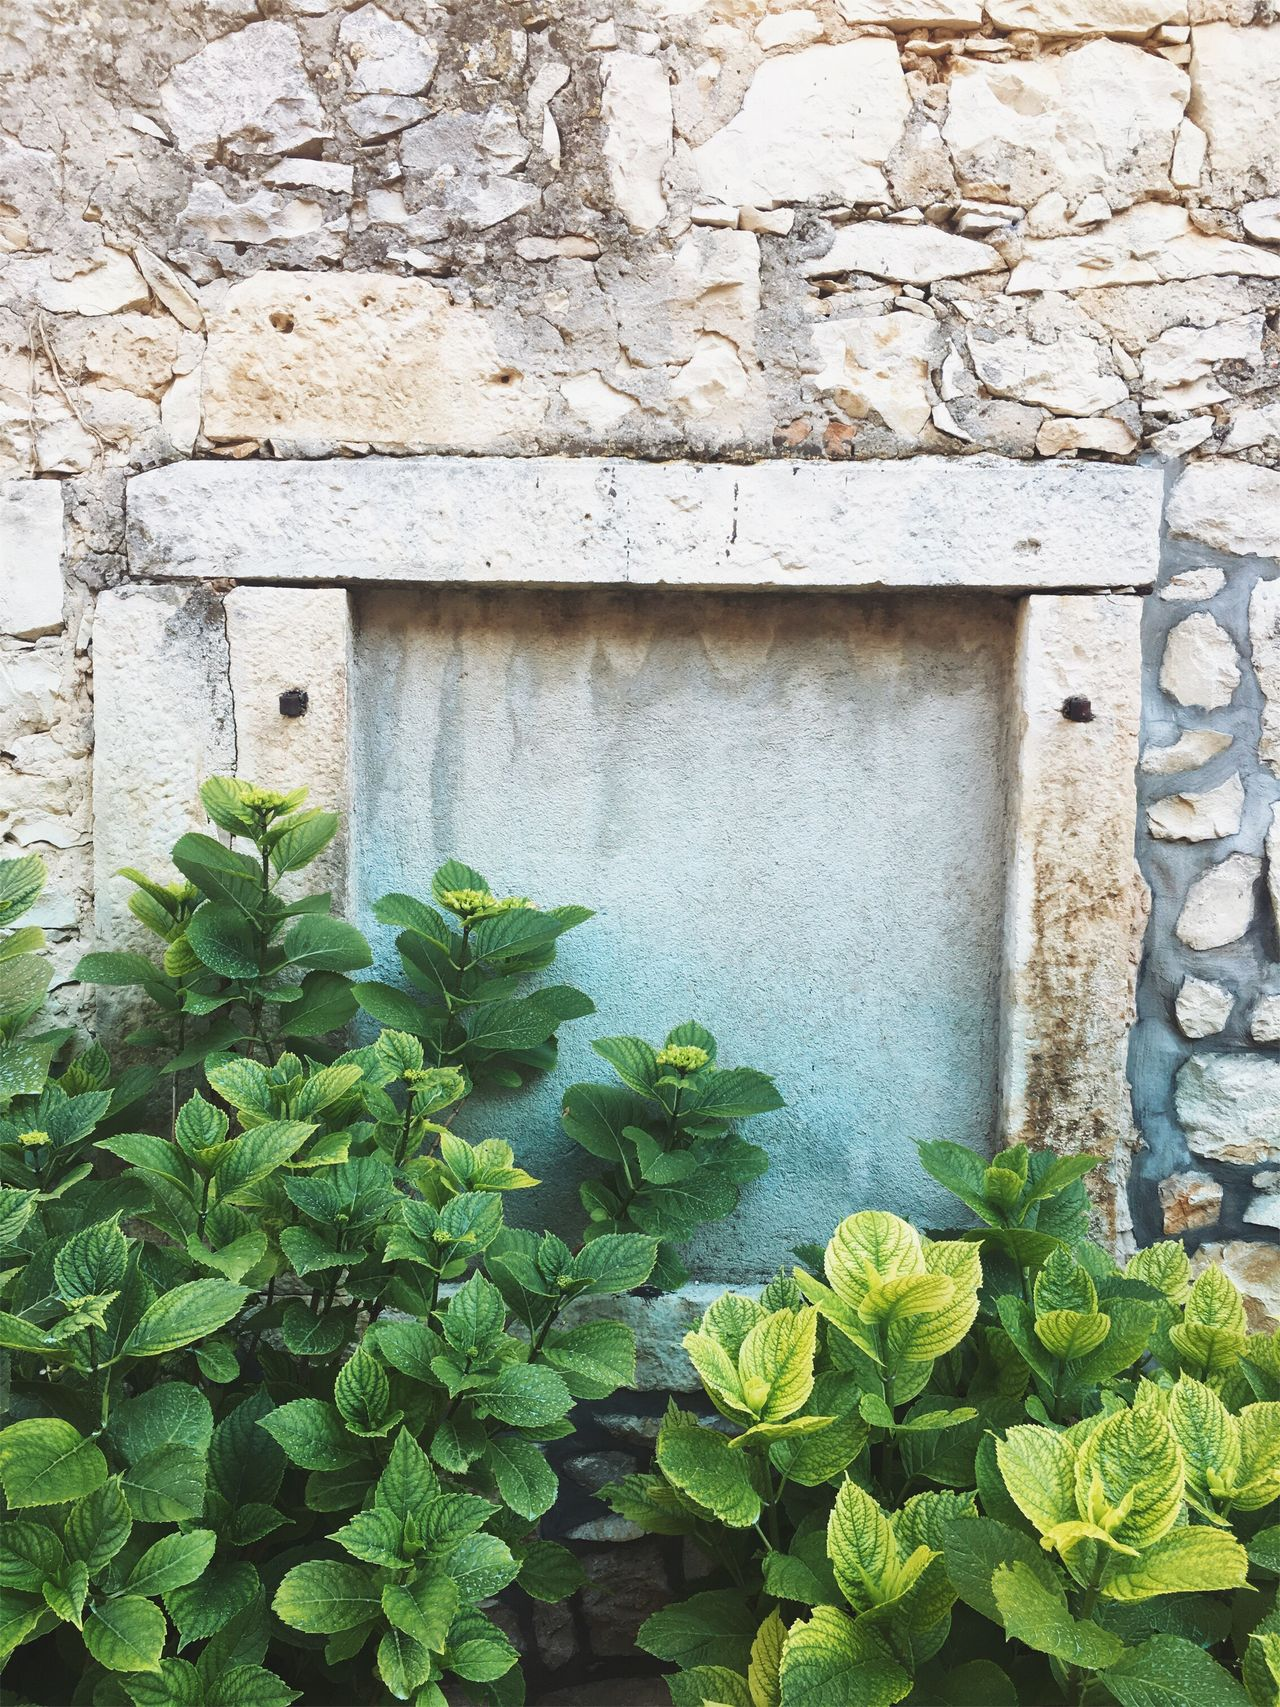 Istrian summer vibes. Plant Architecture Growth Built Structure Green Color Leaf Outdoors Building Exterior No People Day Ivy Nature Close-up